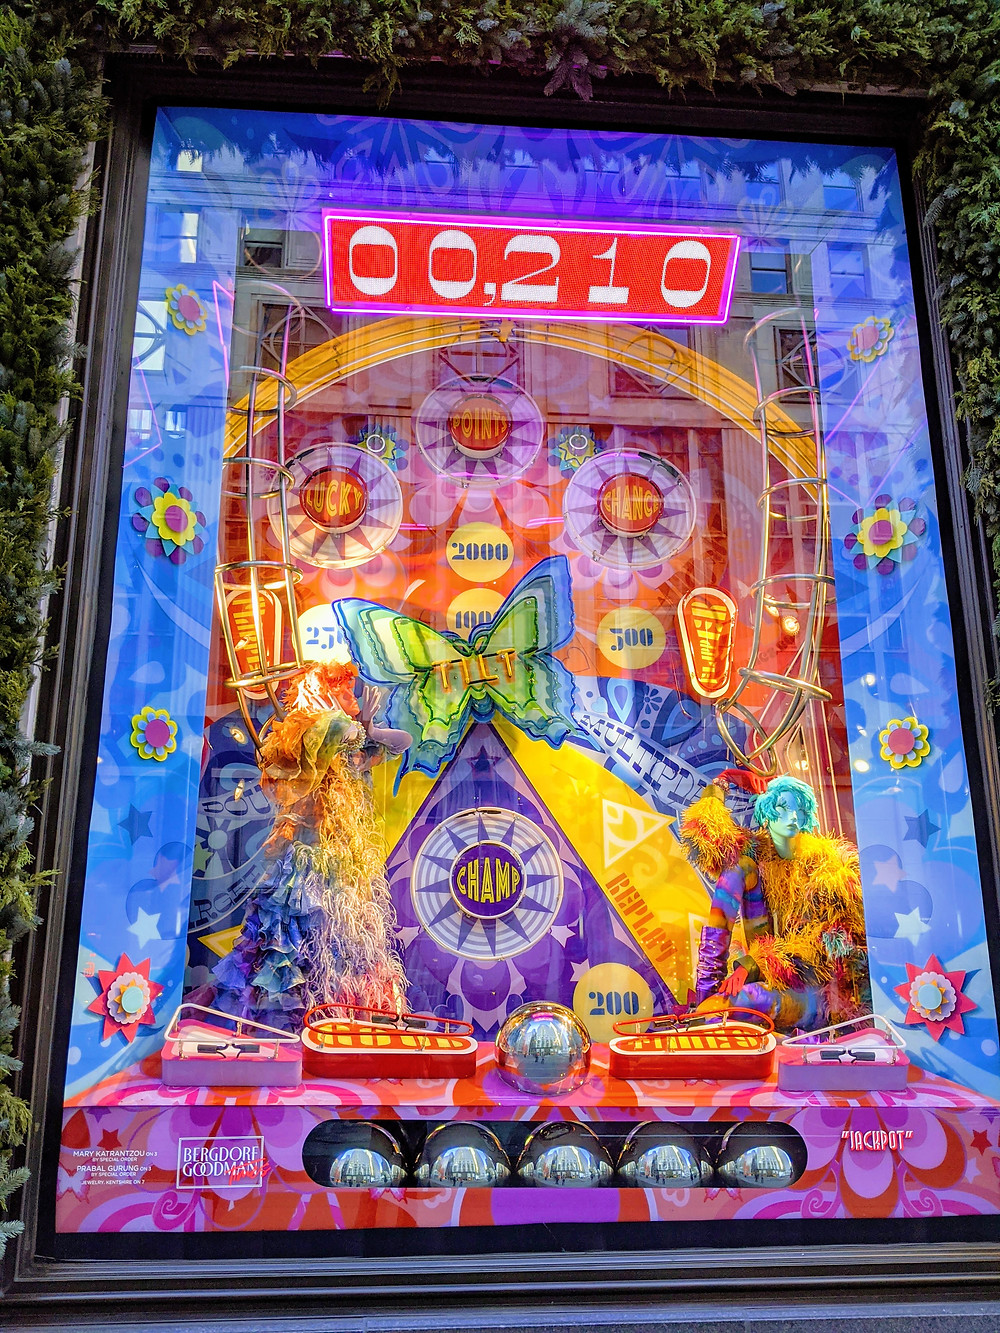 window-display-showing-a-colorful-pinball-machine